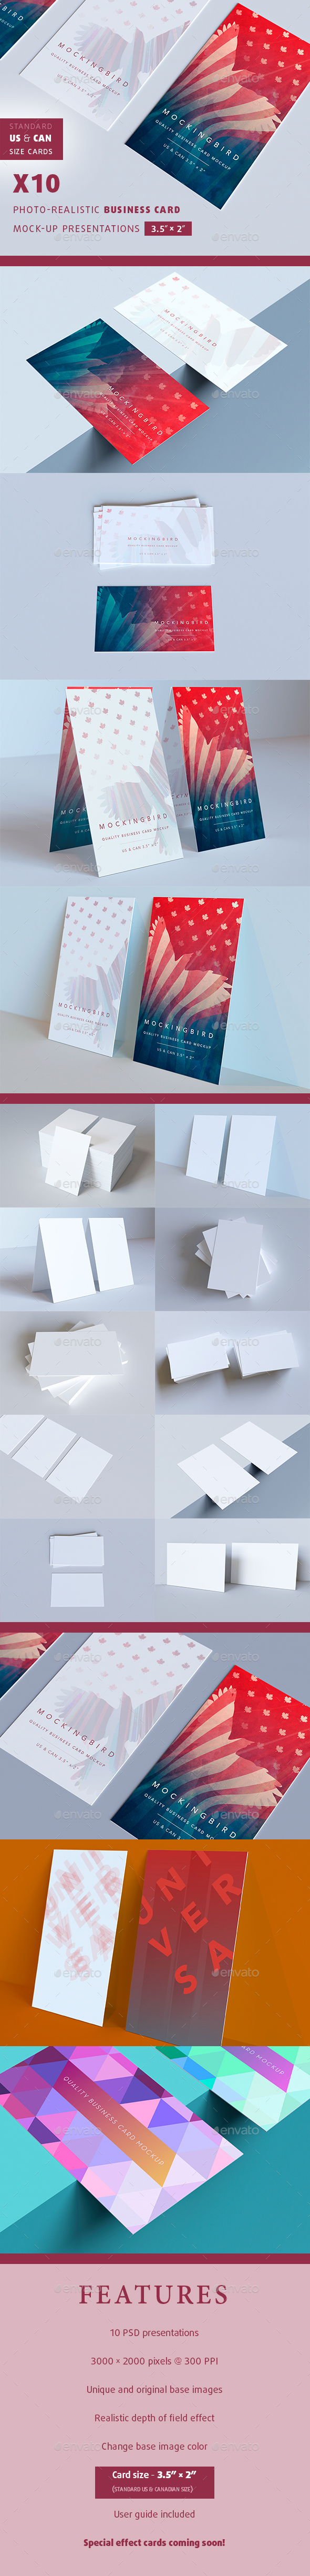 3.5 x 2 inch Realistic Business Card Mock-ups - Business Cards Print